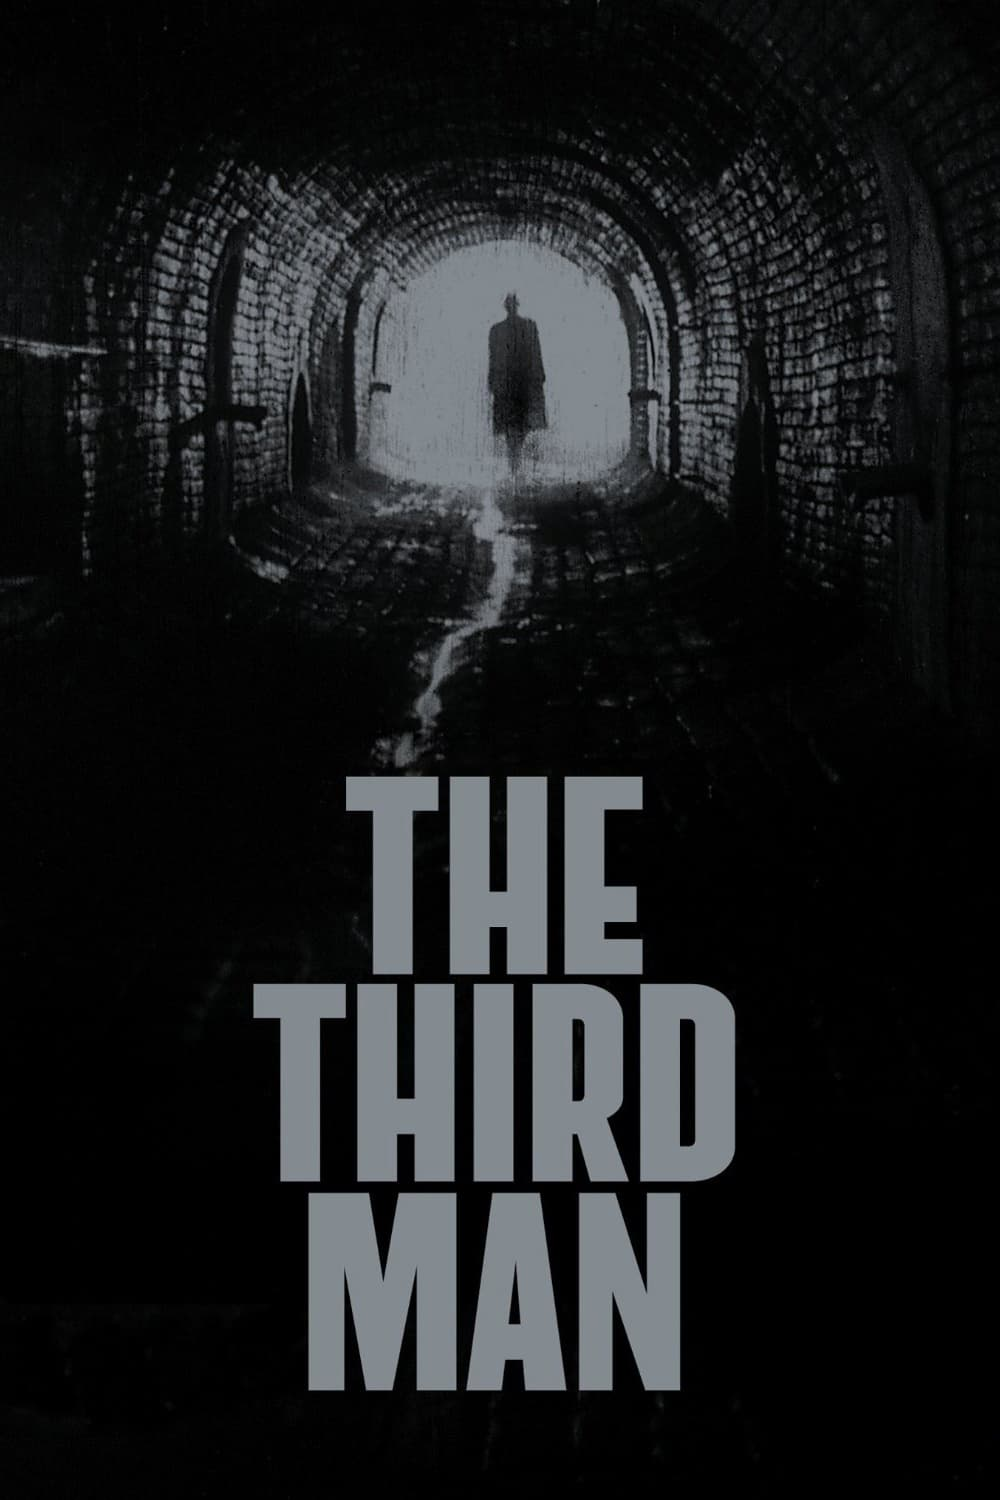 Poster for The Third Man